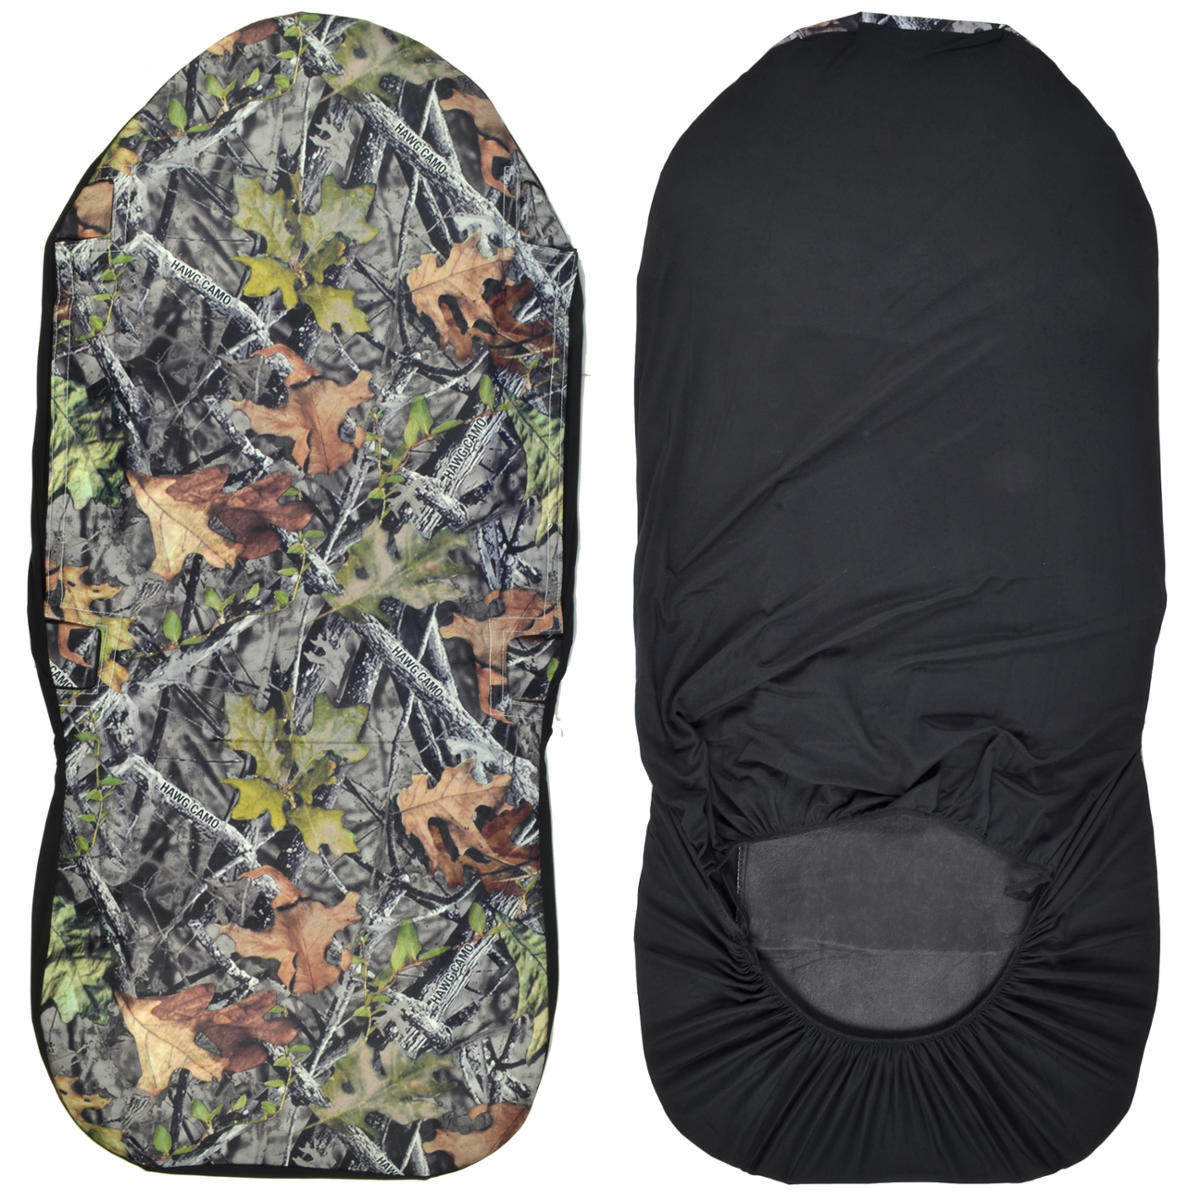 Shop Bdk Camouflage Seat Covers For Pick Up Truck Built In Belt Camo Chevy Silverado Armrest Airbag Compatible Free Shipping On Orders Over 45